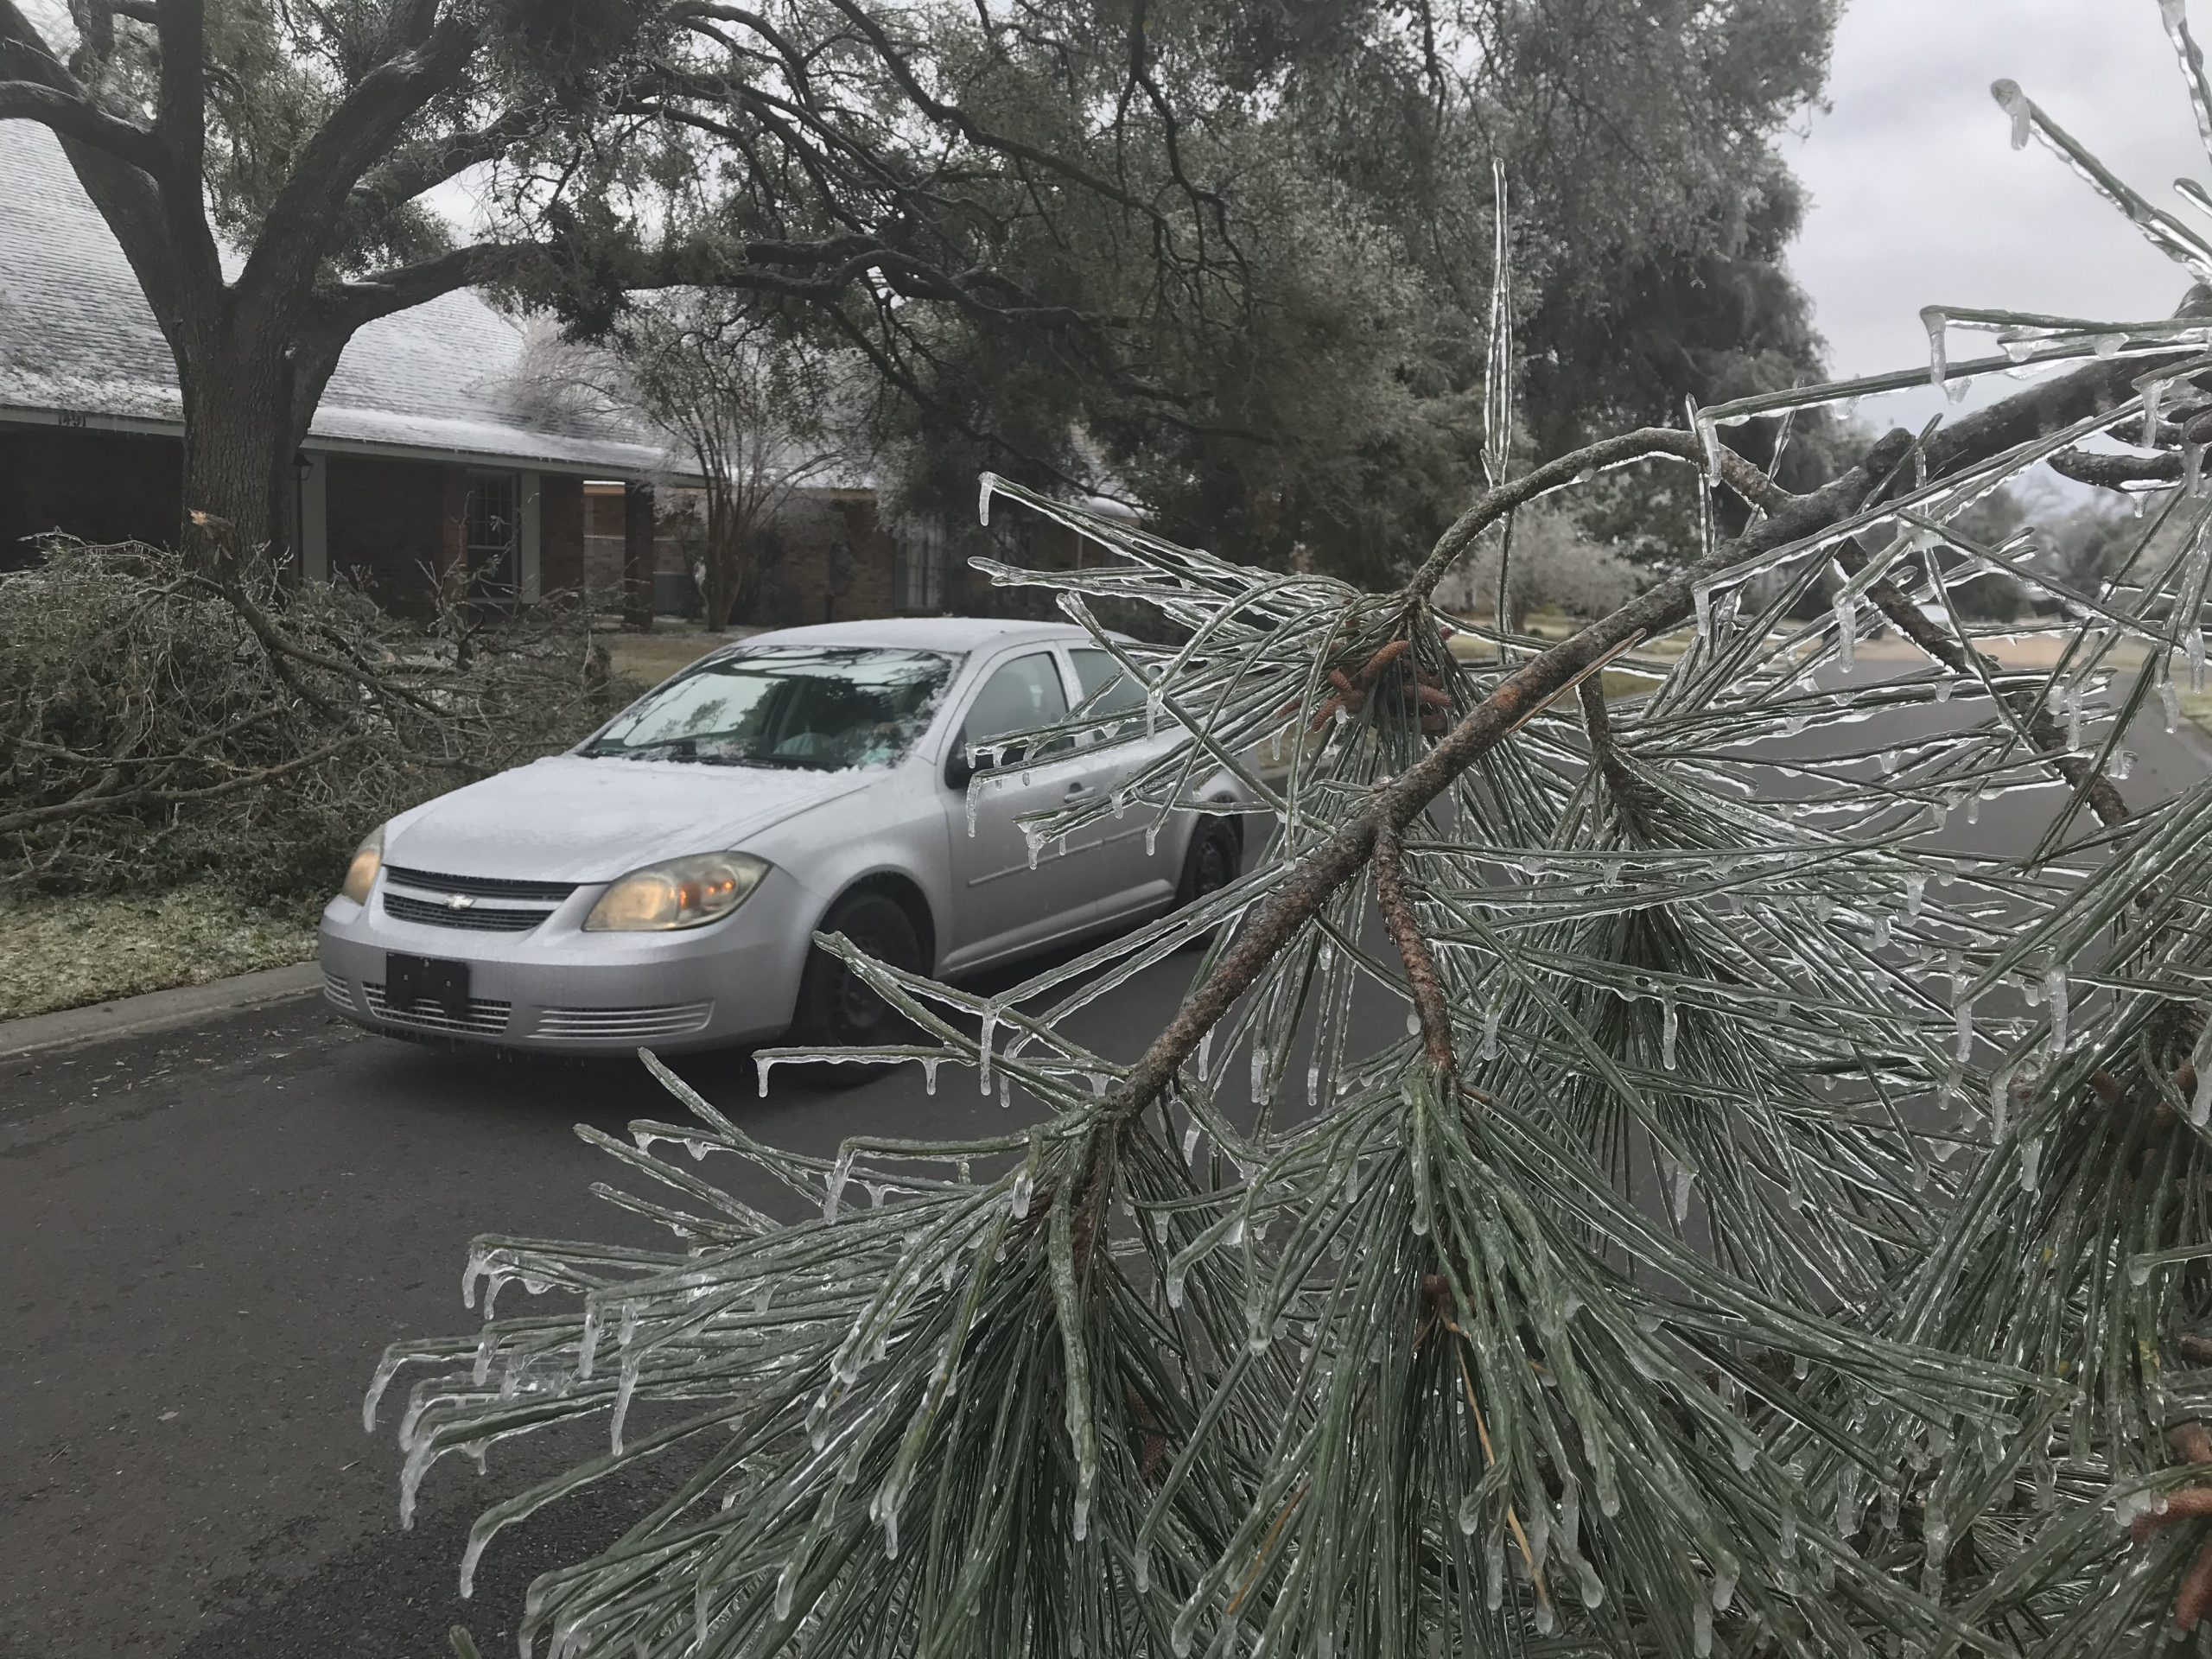 Winter storm leaves Louisiana with 1 million under boil-water notice and 125k without power